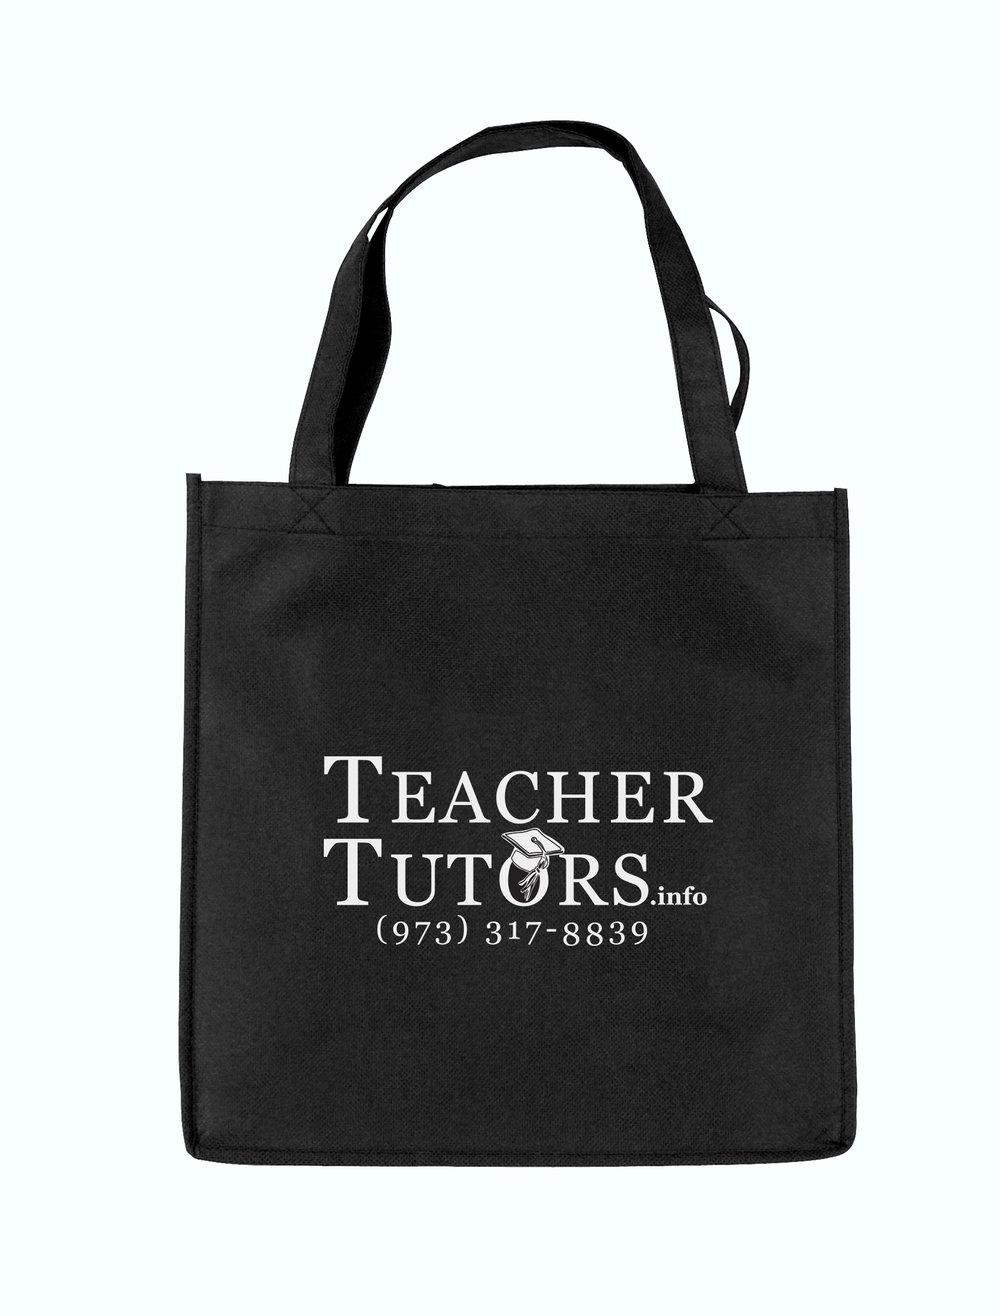 ADLIPPS B130 TEACHER BLACK WHITE 092815.jpg